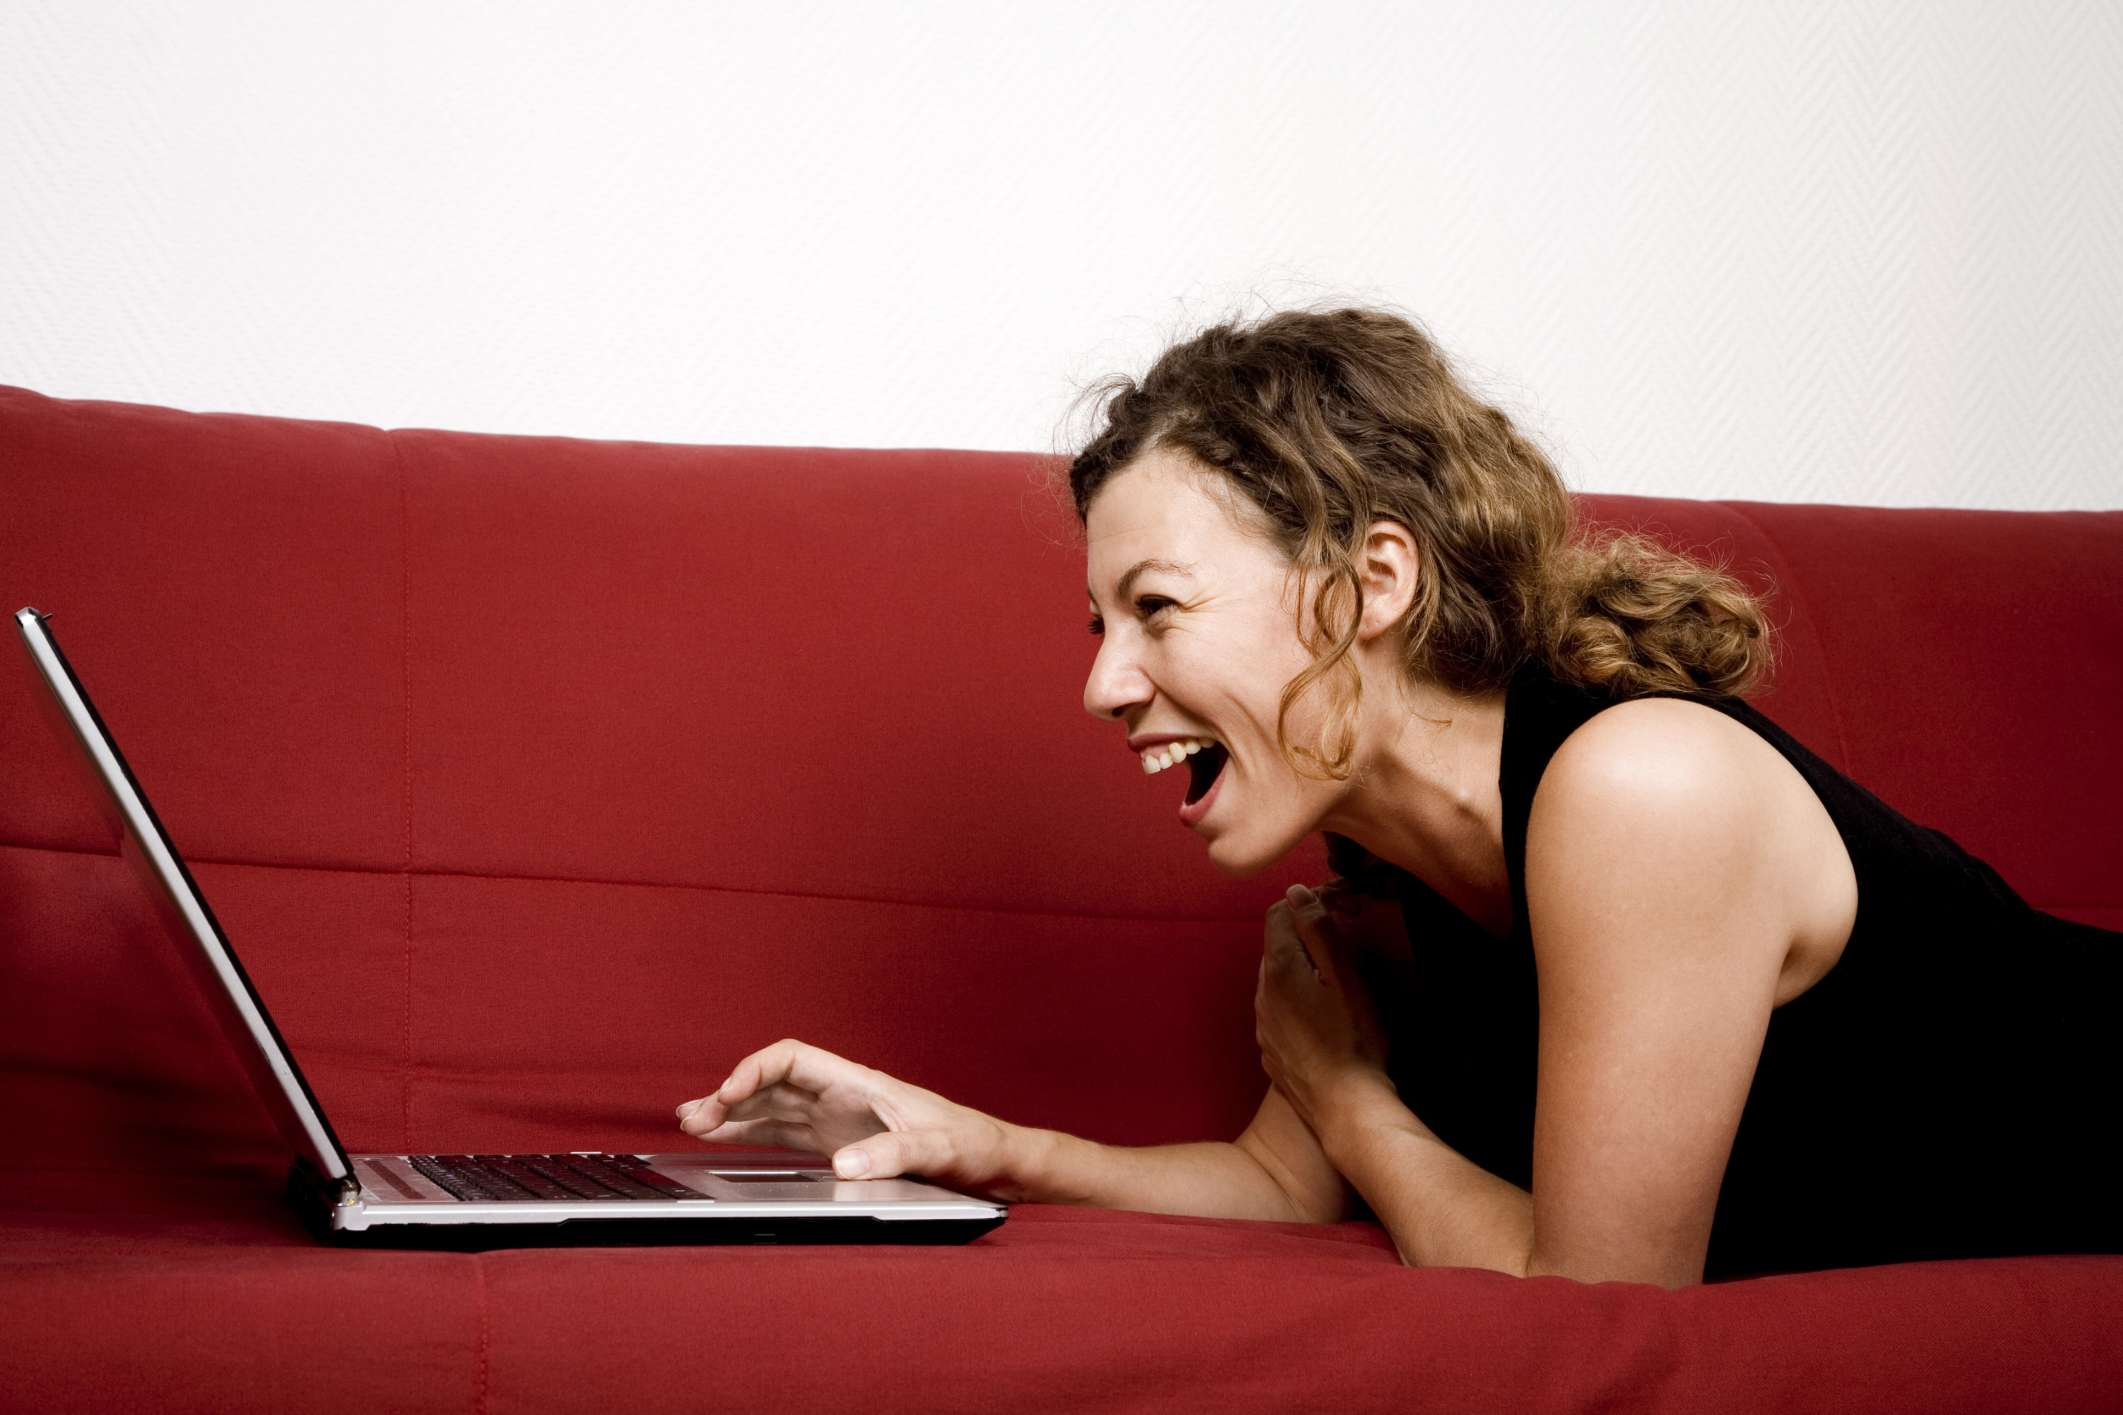 Woman lying on couch looking at computer laughing